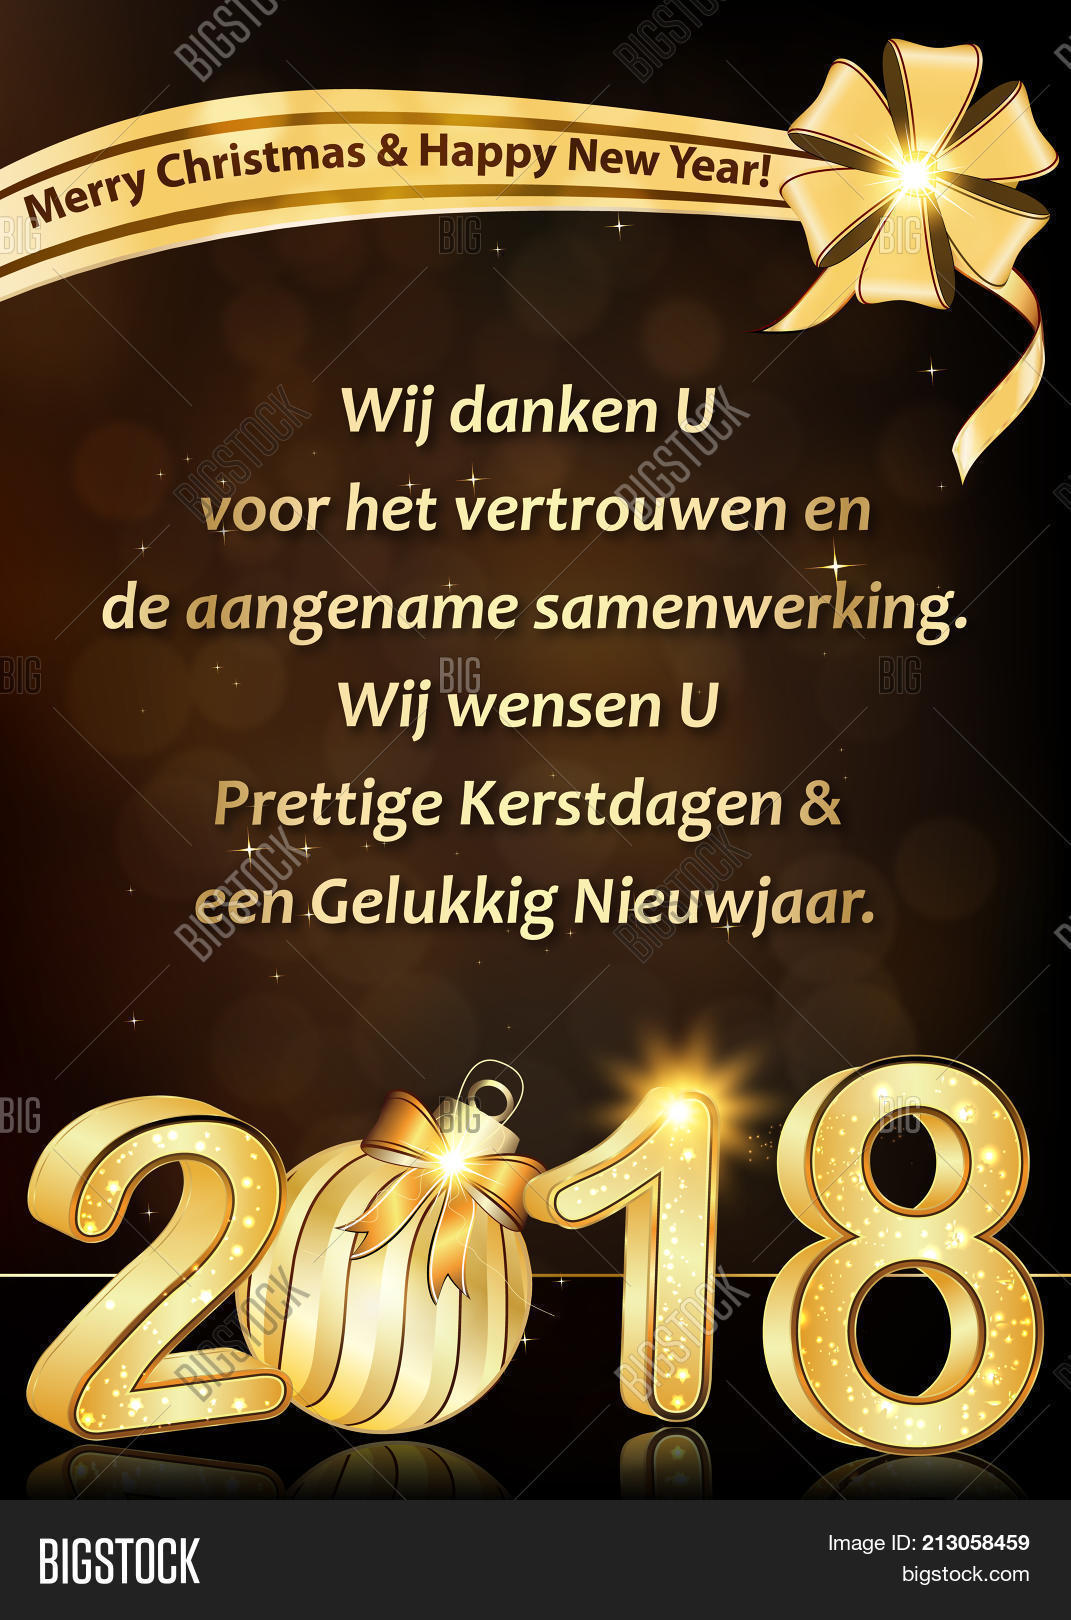 thank you dutch business new year greeting card we wish to thank you for your